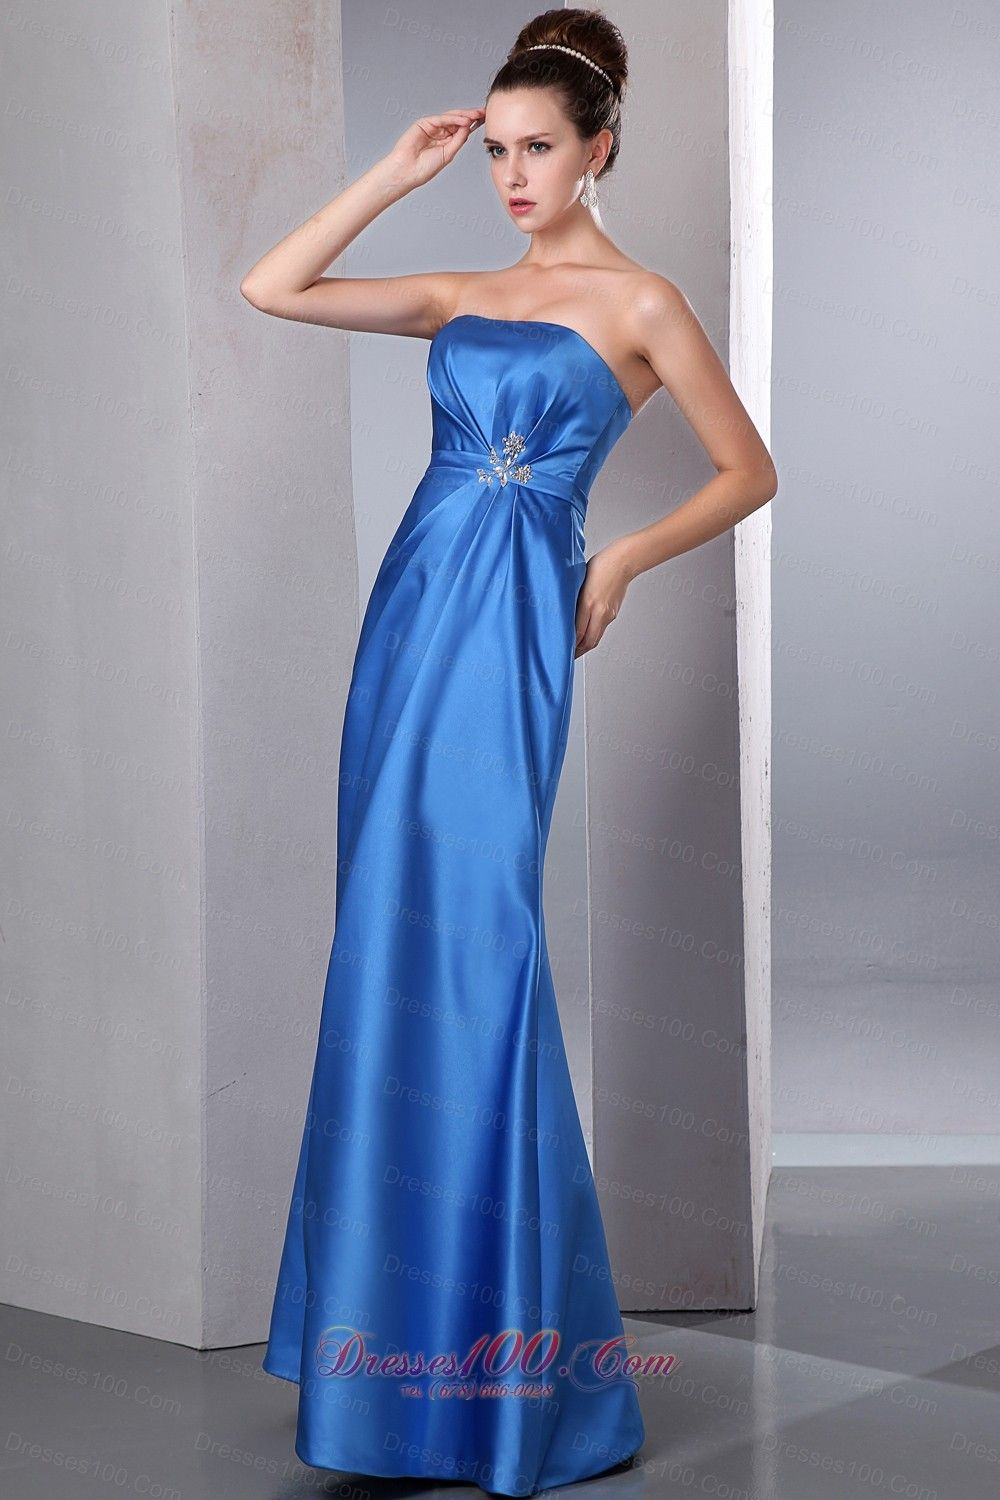 Top prom dress in glenn heights tx party dresses celebrity dresses